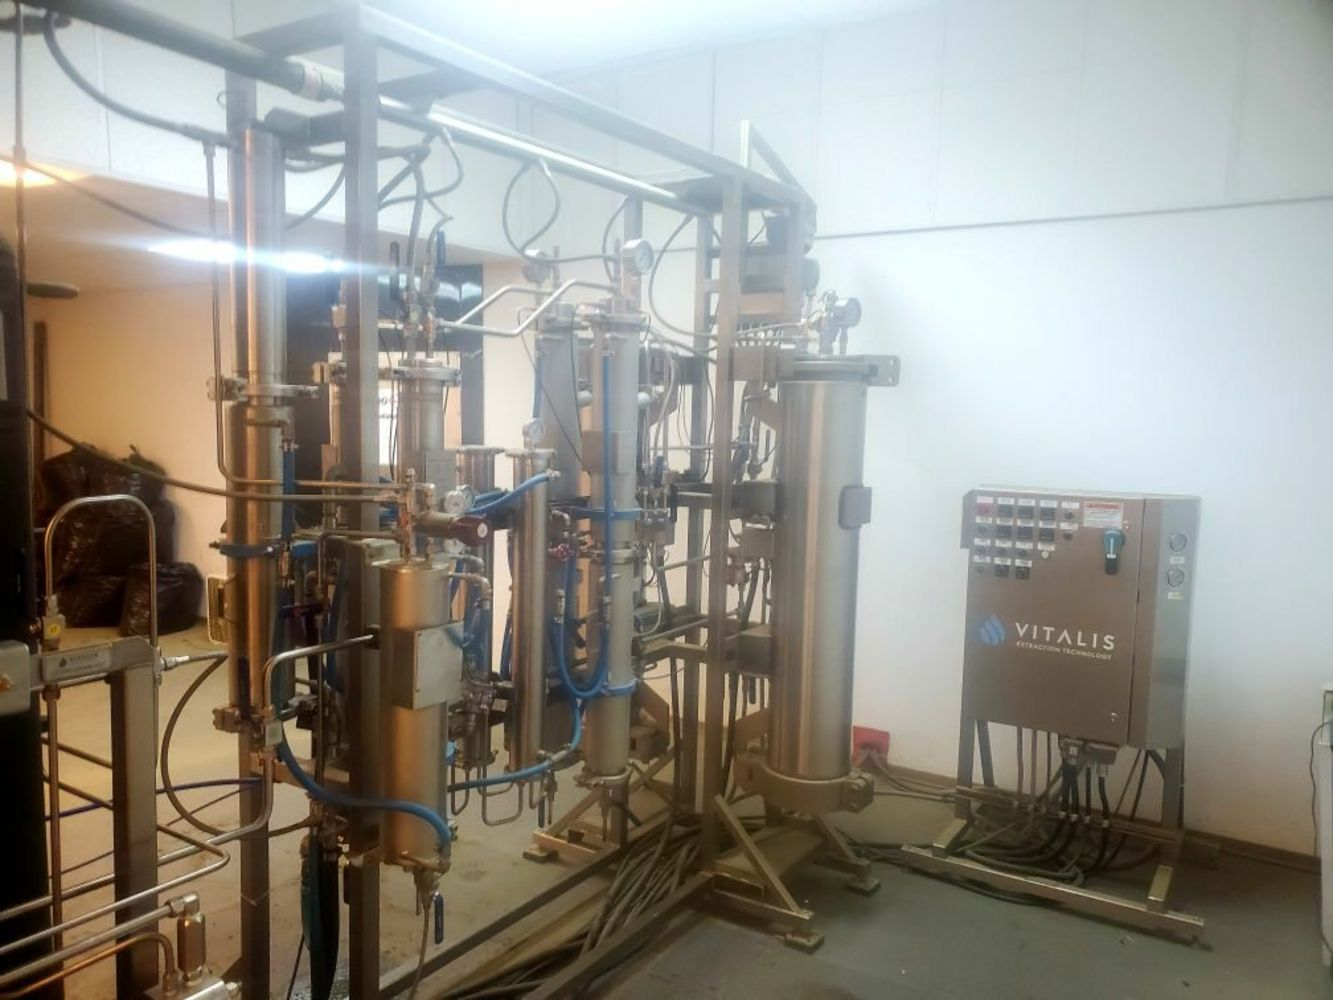 Used Vitalis Q90 CO2 Supercritical Fluid Extraction System – By The Order of the Leasing Company.